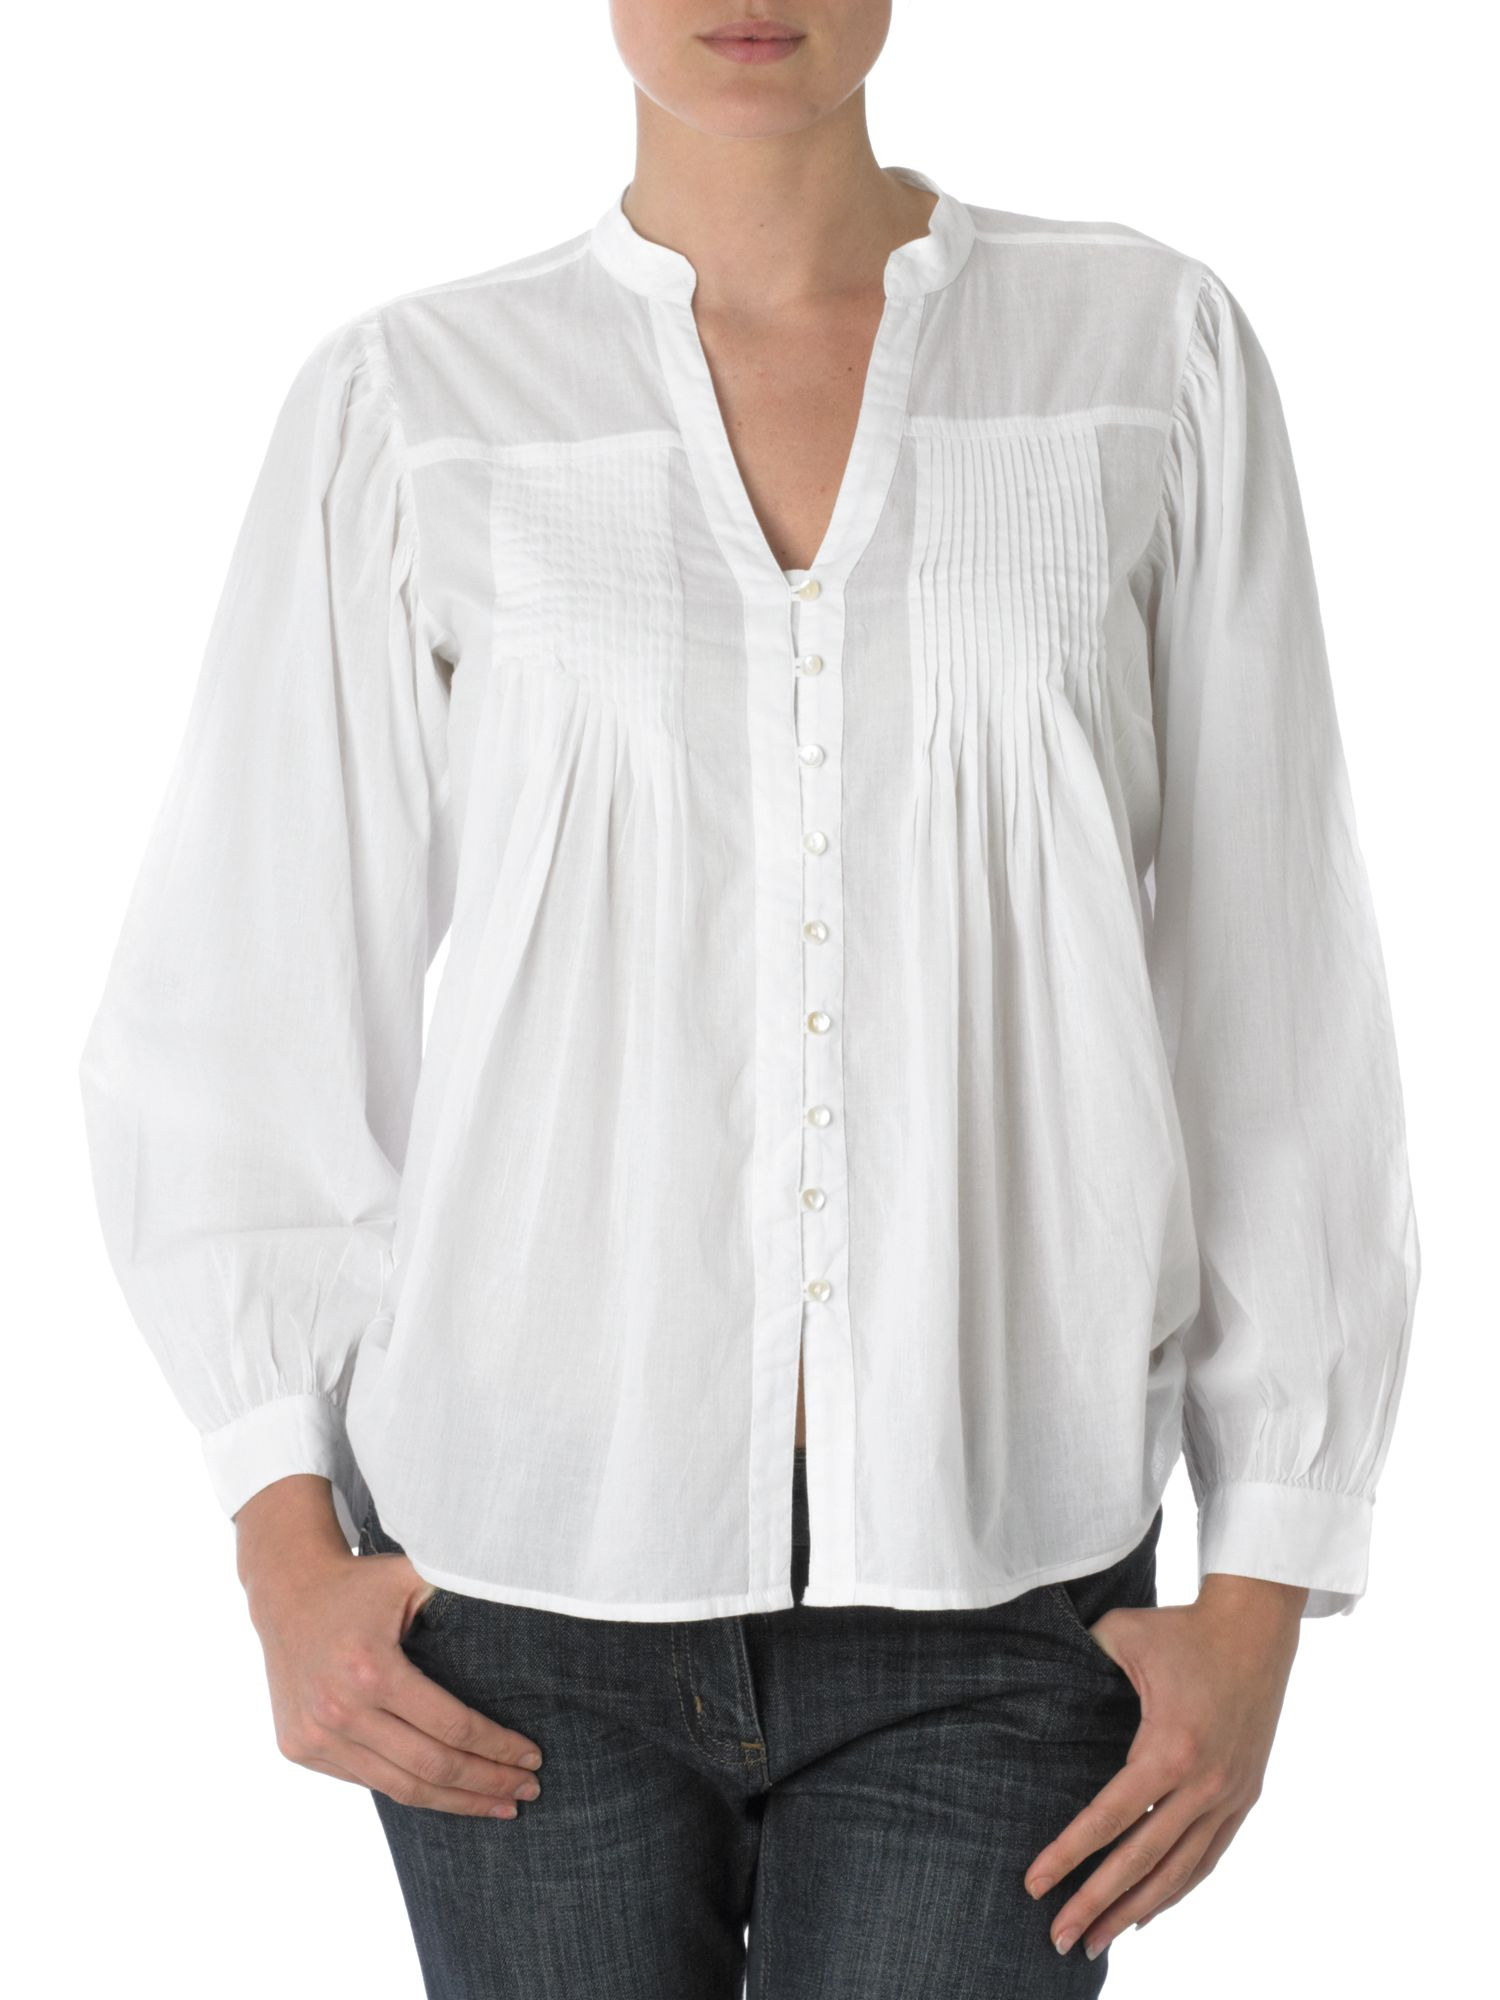 Linea Weekend Pintuck blouse product image